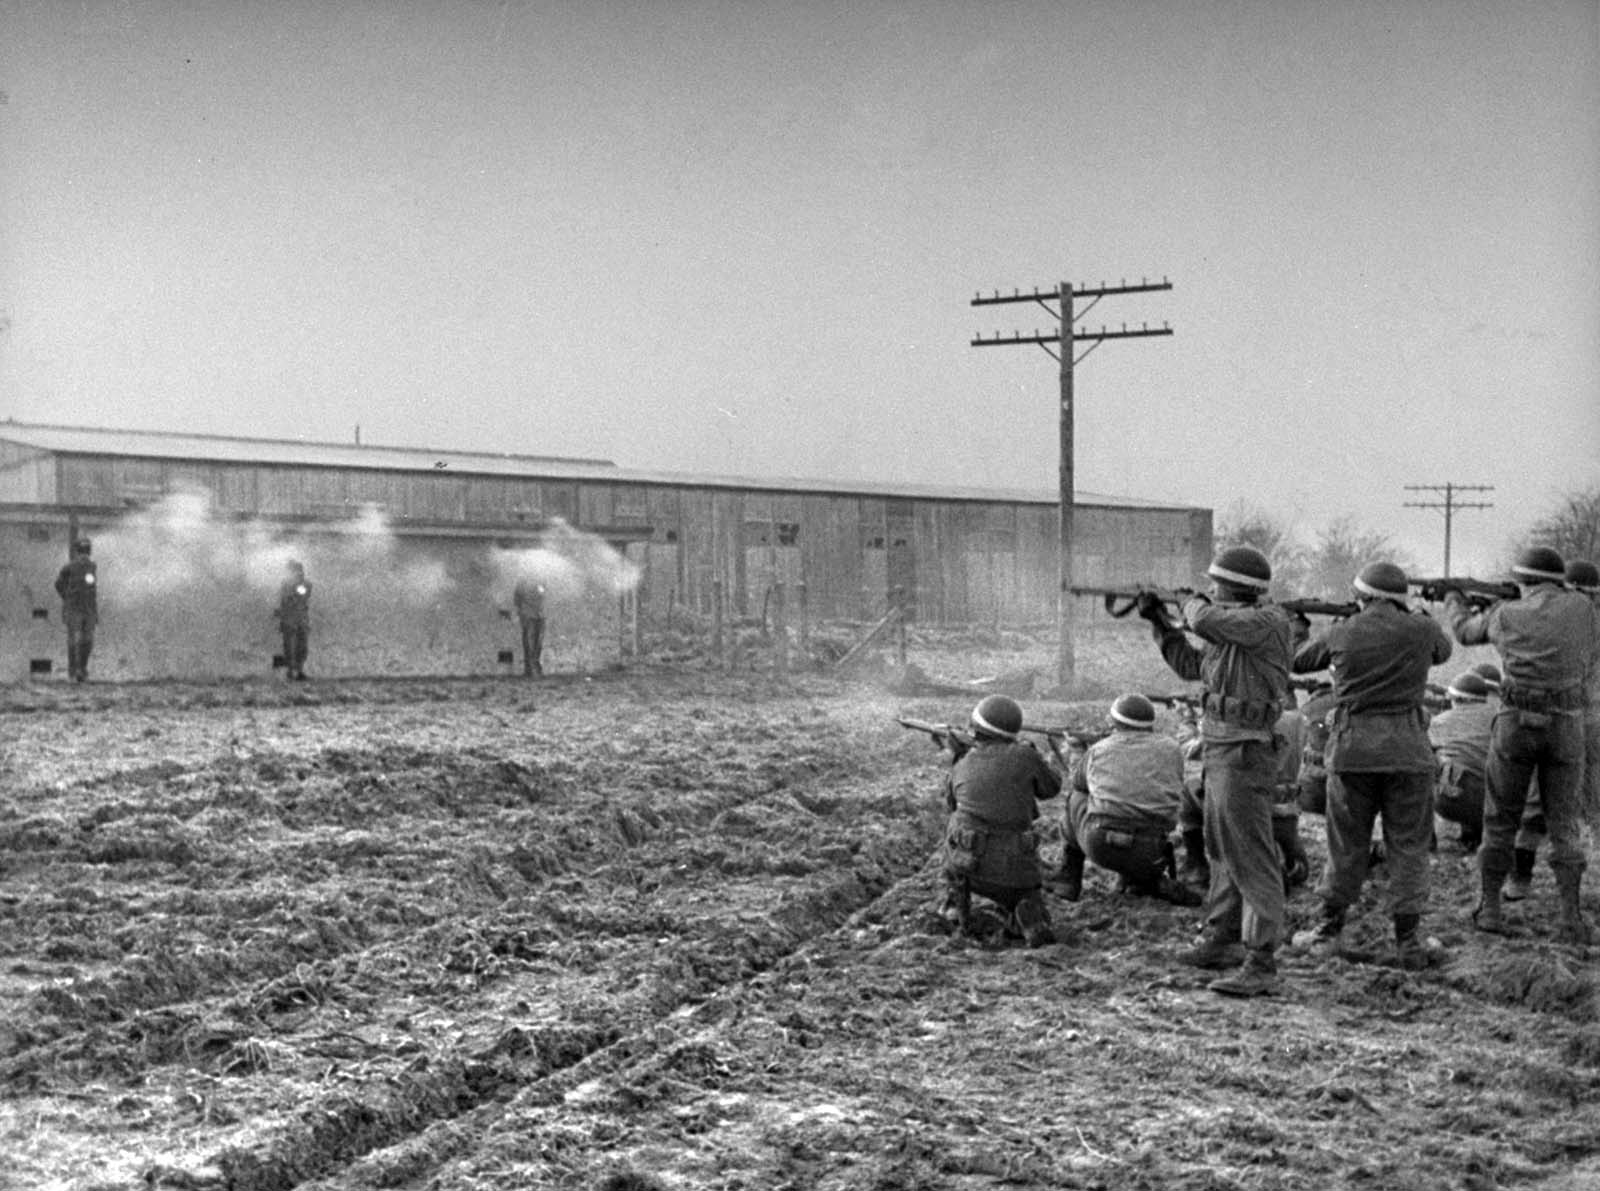 The infiltrators being executed. As a result of this mission, American troops began asking other soldiers questions that they felt only Americans would know the answers to in order to flush out the German infiltrators, which included naming certain states' capitals, sports and trivia questions related to America, etc.